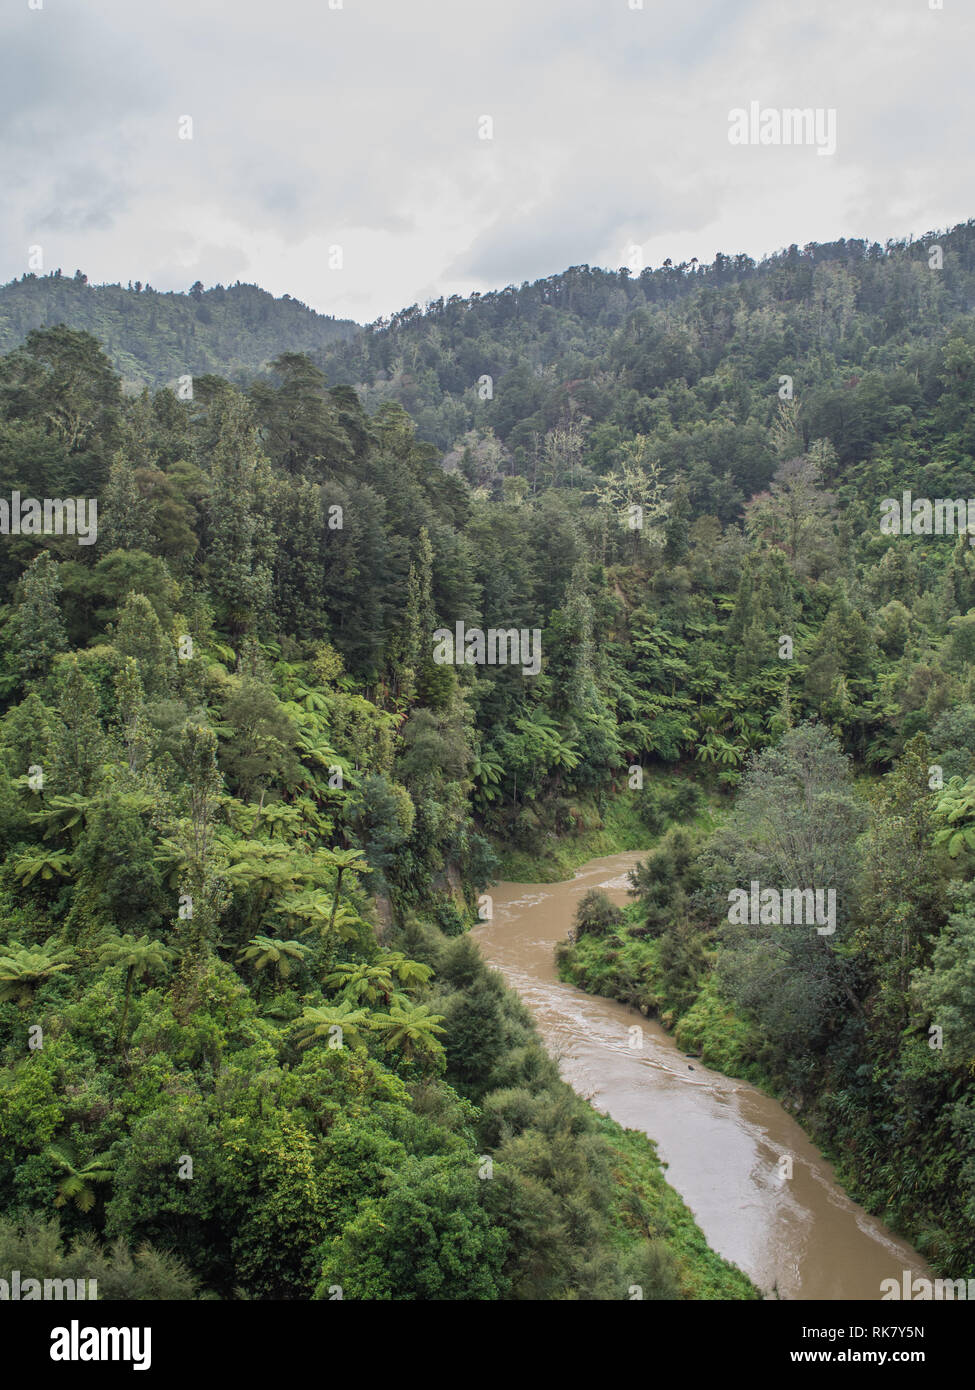 Ahuahu Stream in flood, flowing through native forest bush covered hills, an overcast day in autumn, Ahuahu Valley, Whanganui River, New Zealand Stock Photo